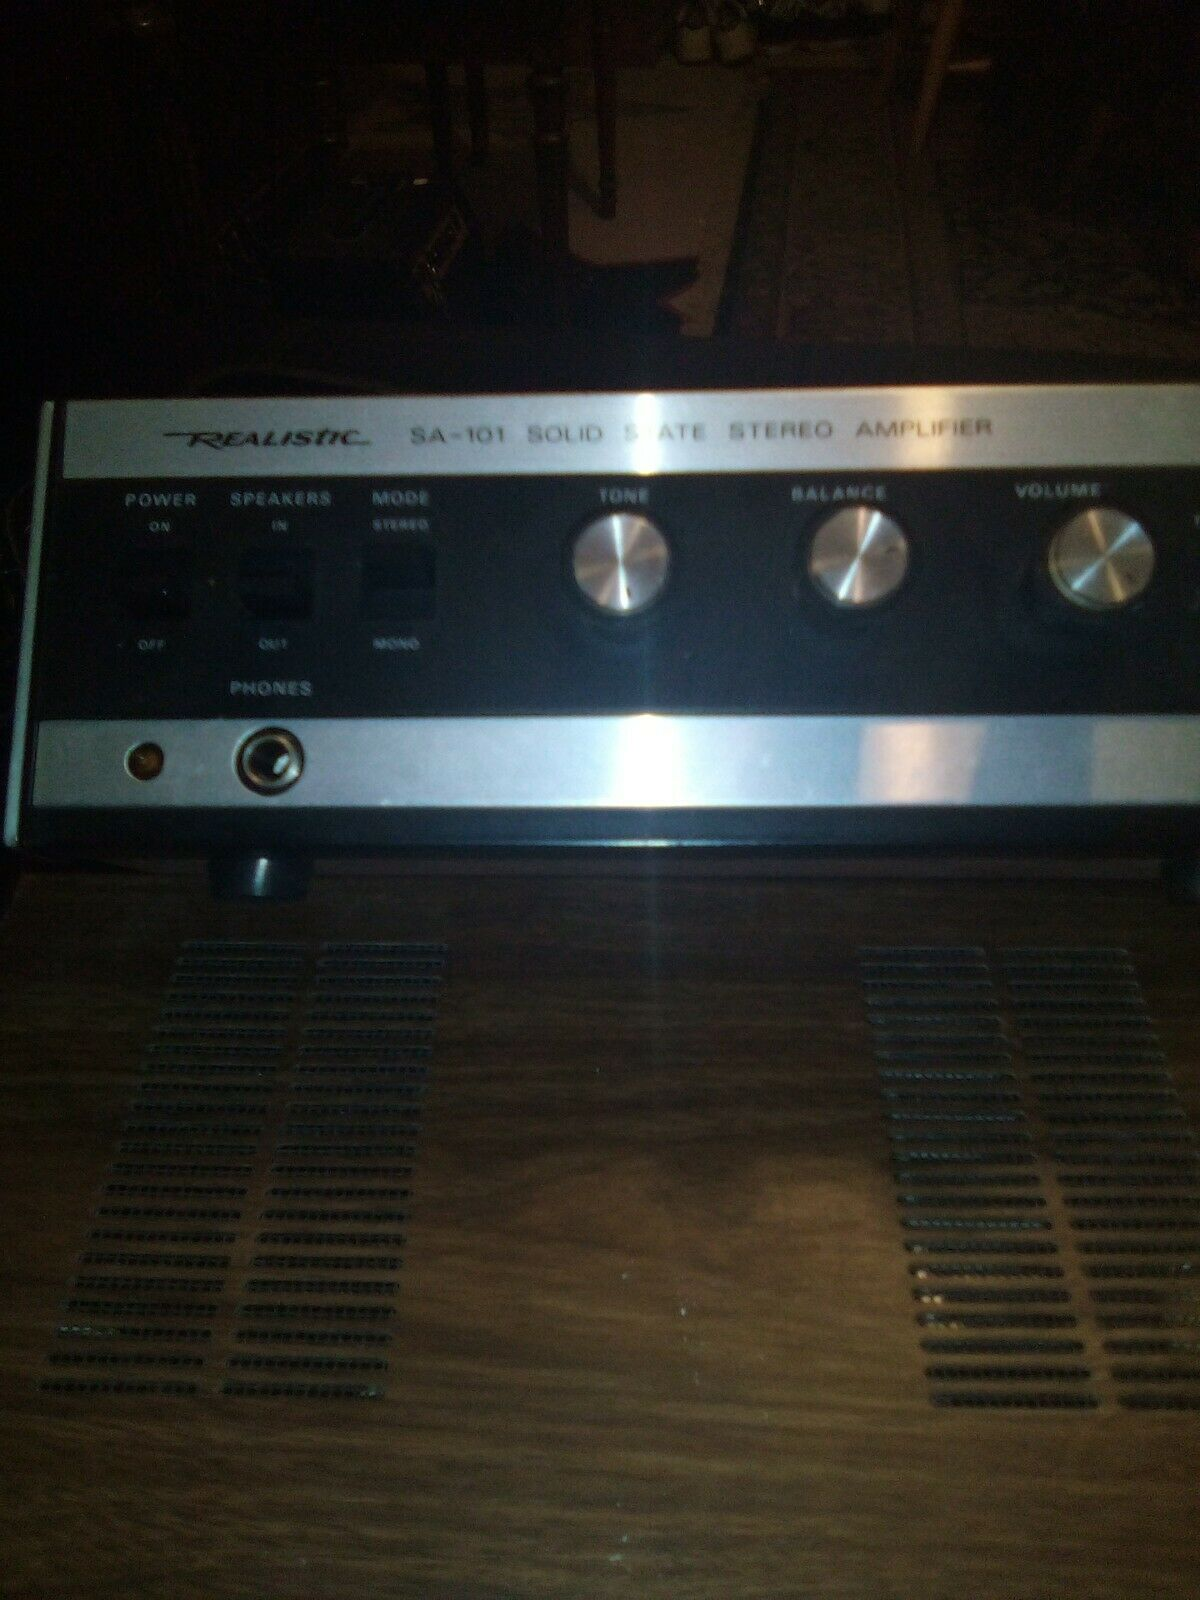 VINTAGE REALISTIC SA-101 SOLID STATE STEREO AMPLIFIER TESTED - $19.99